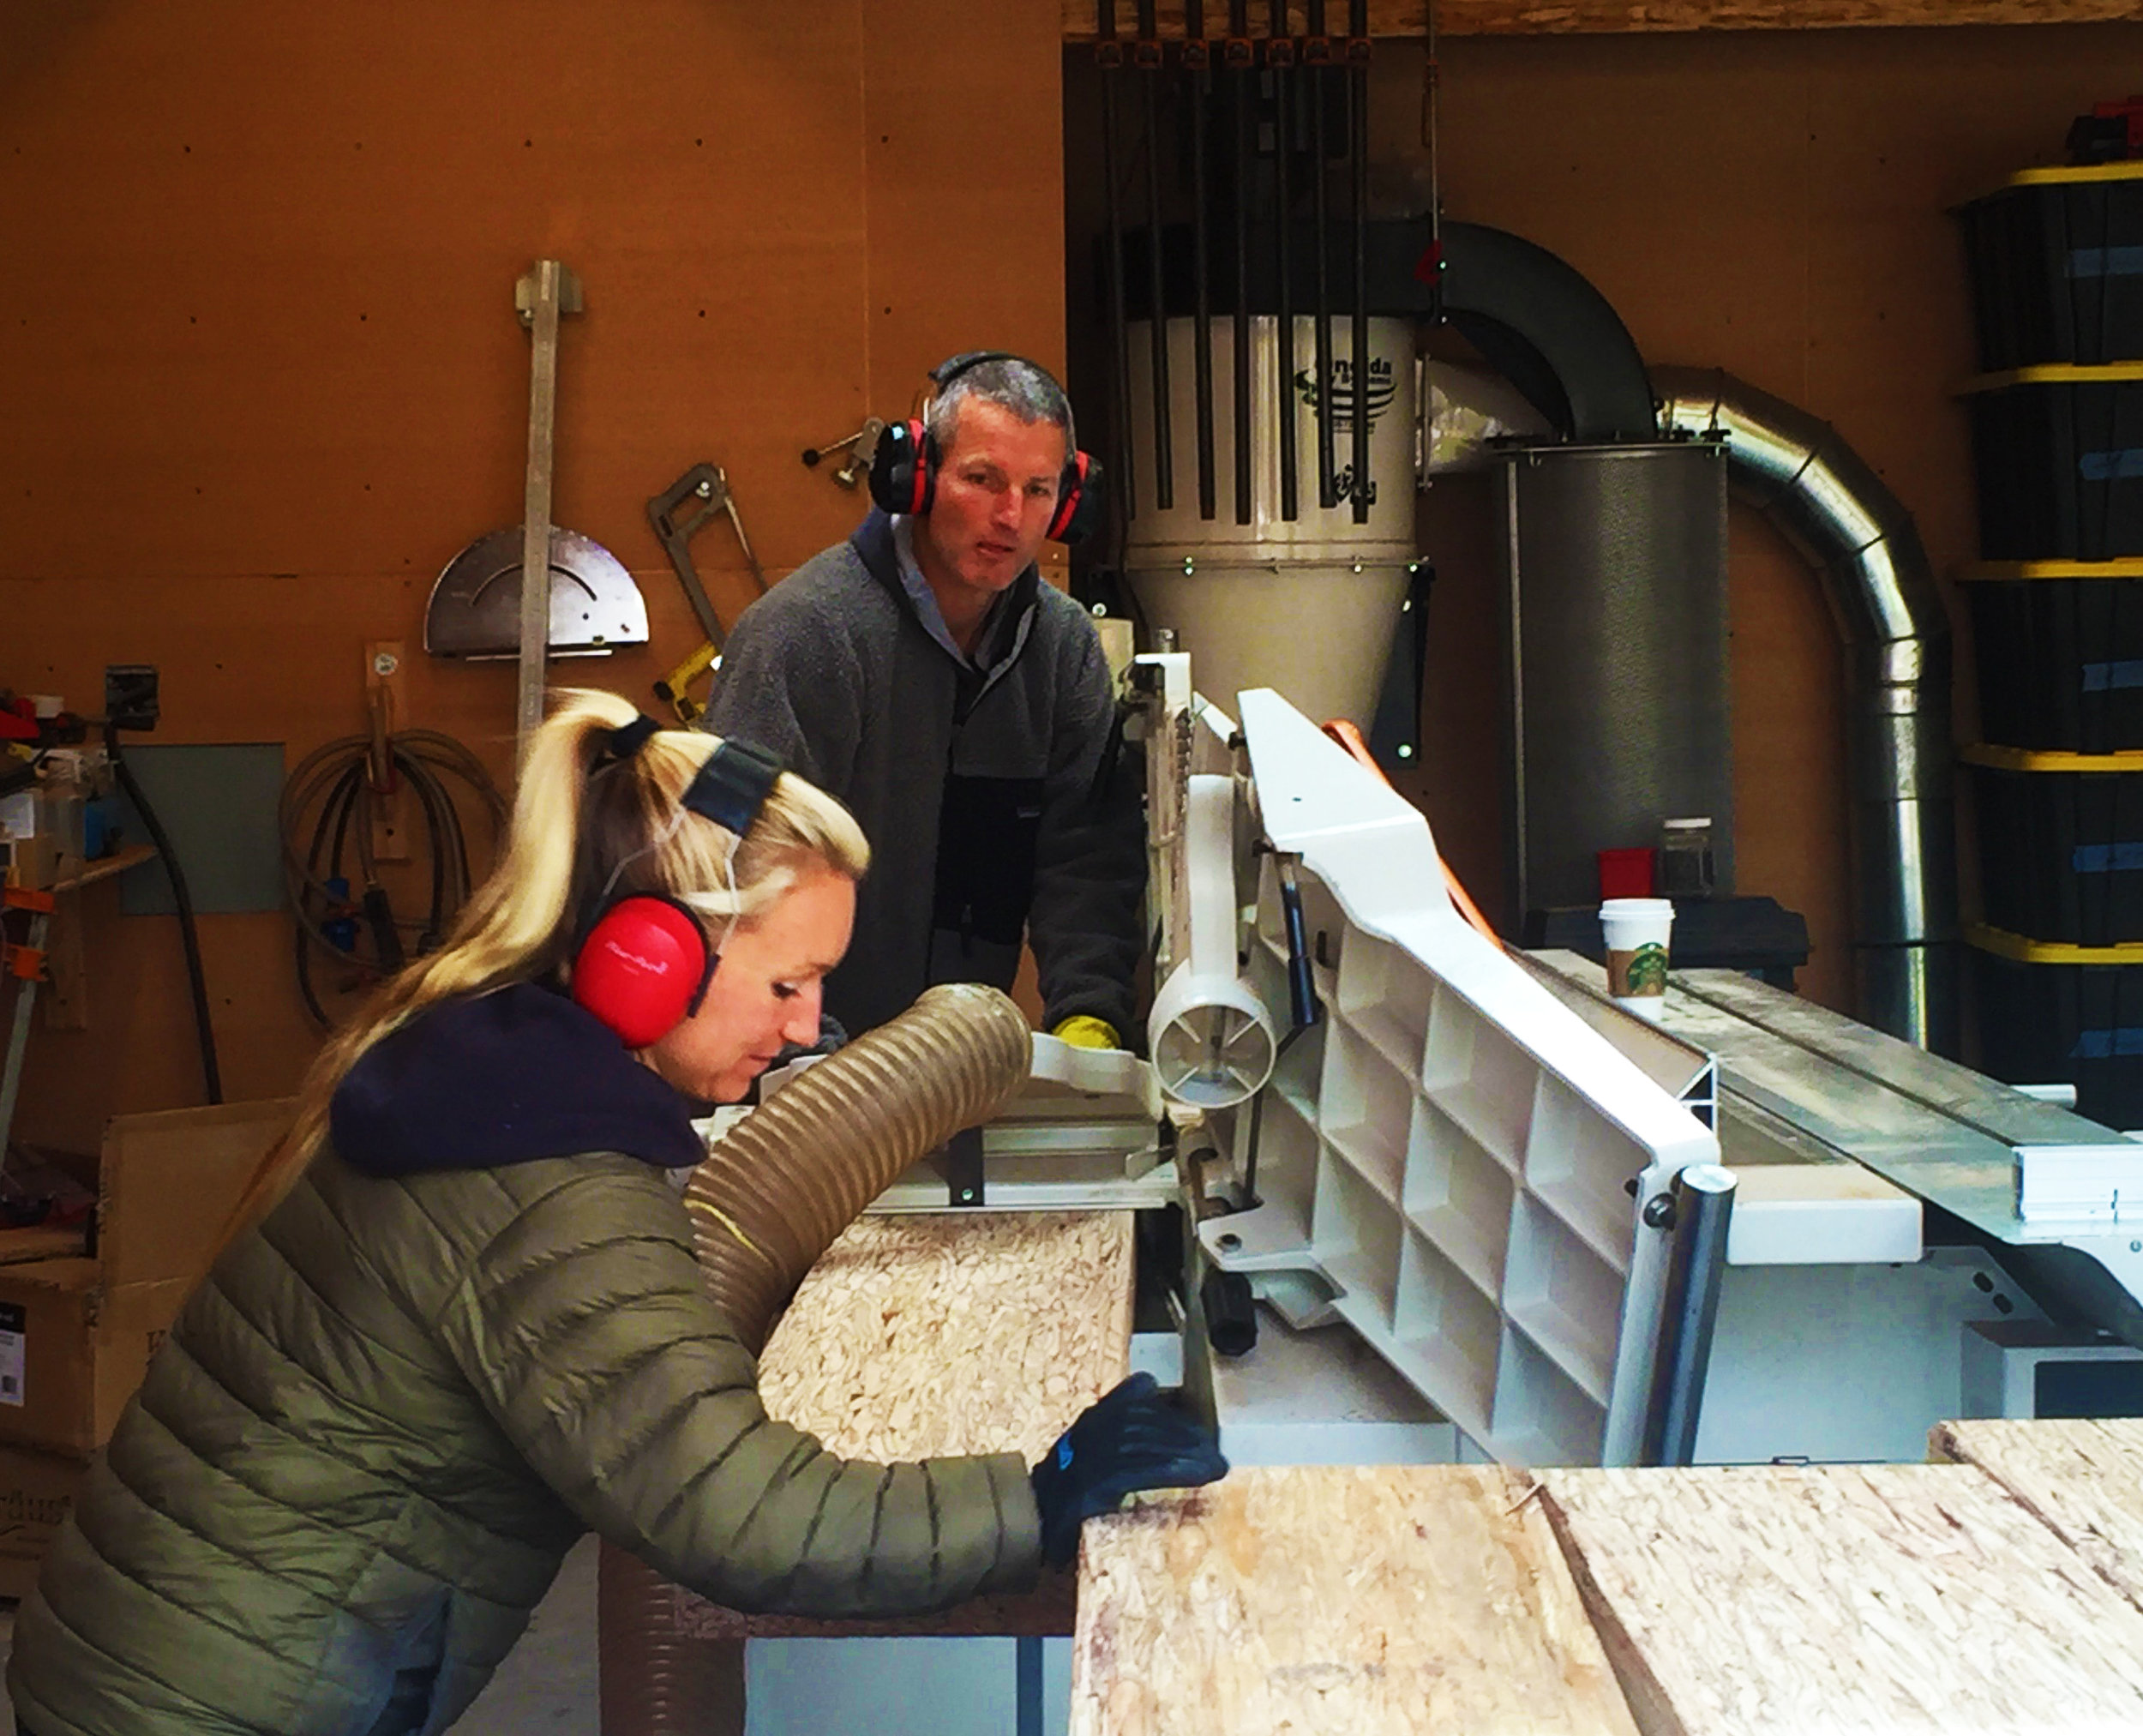 Hard at work planing the entry stairs in our woodshop on our combination woodworking machine.